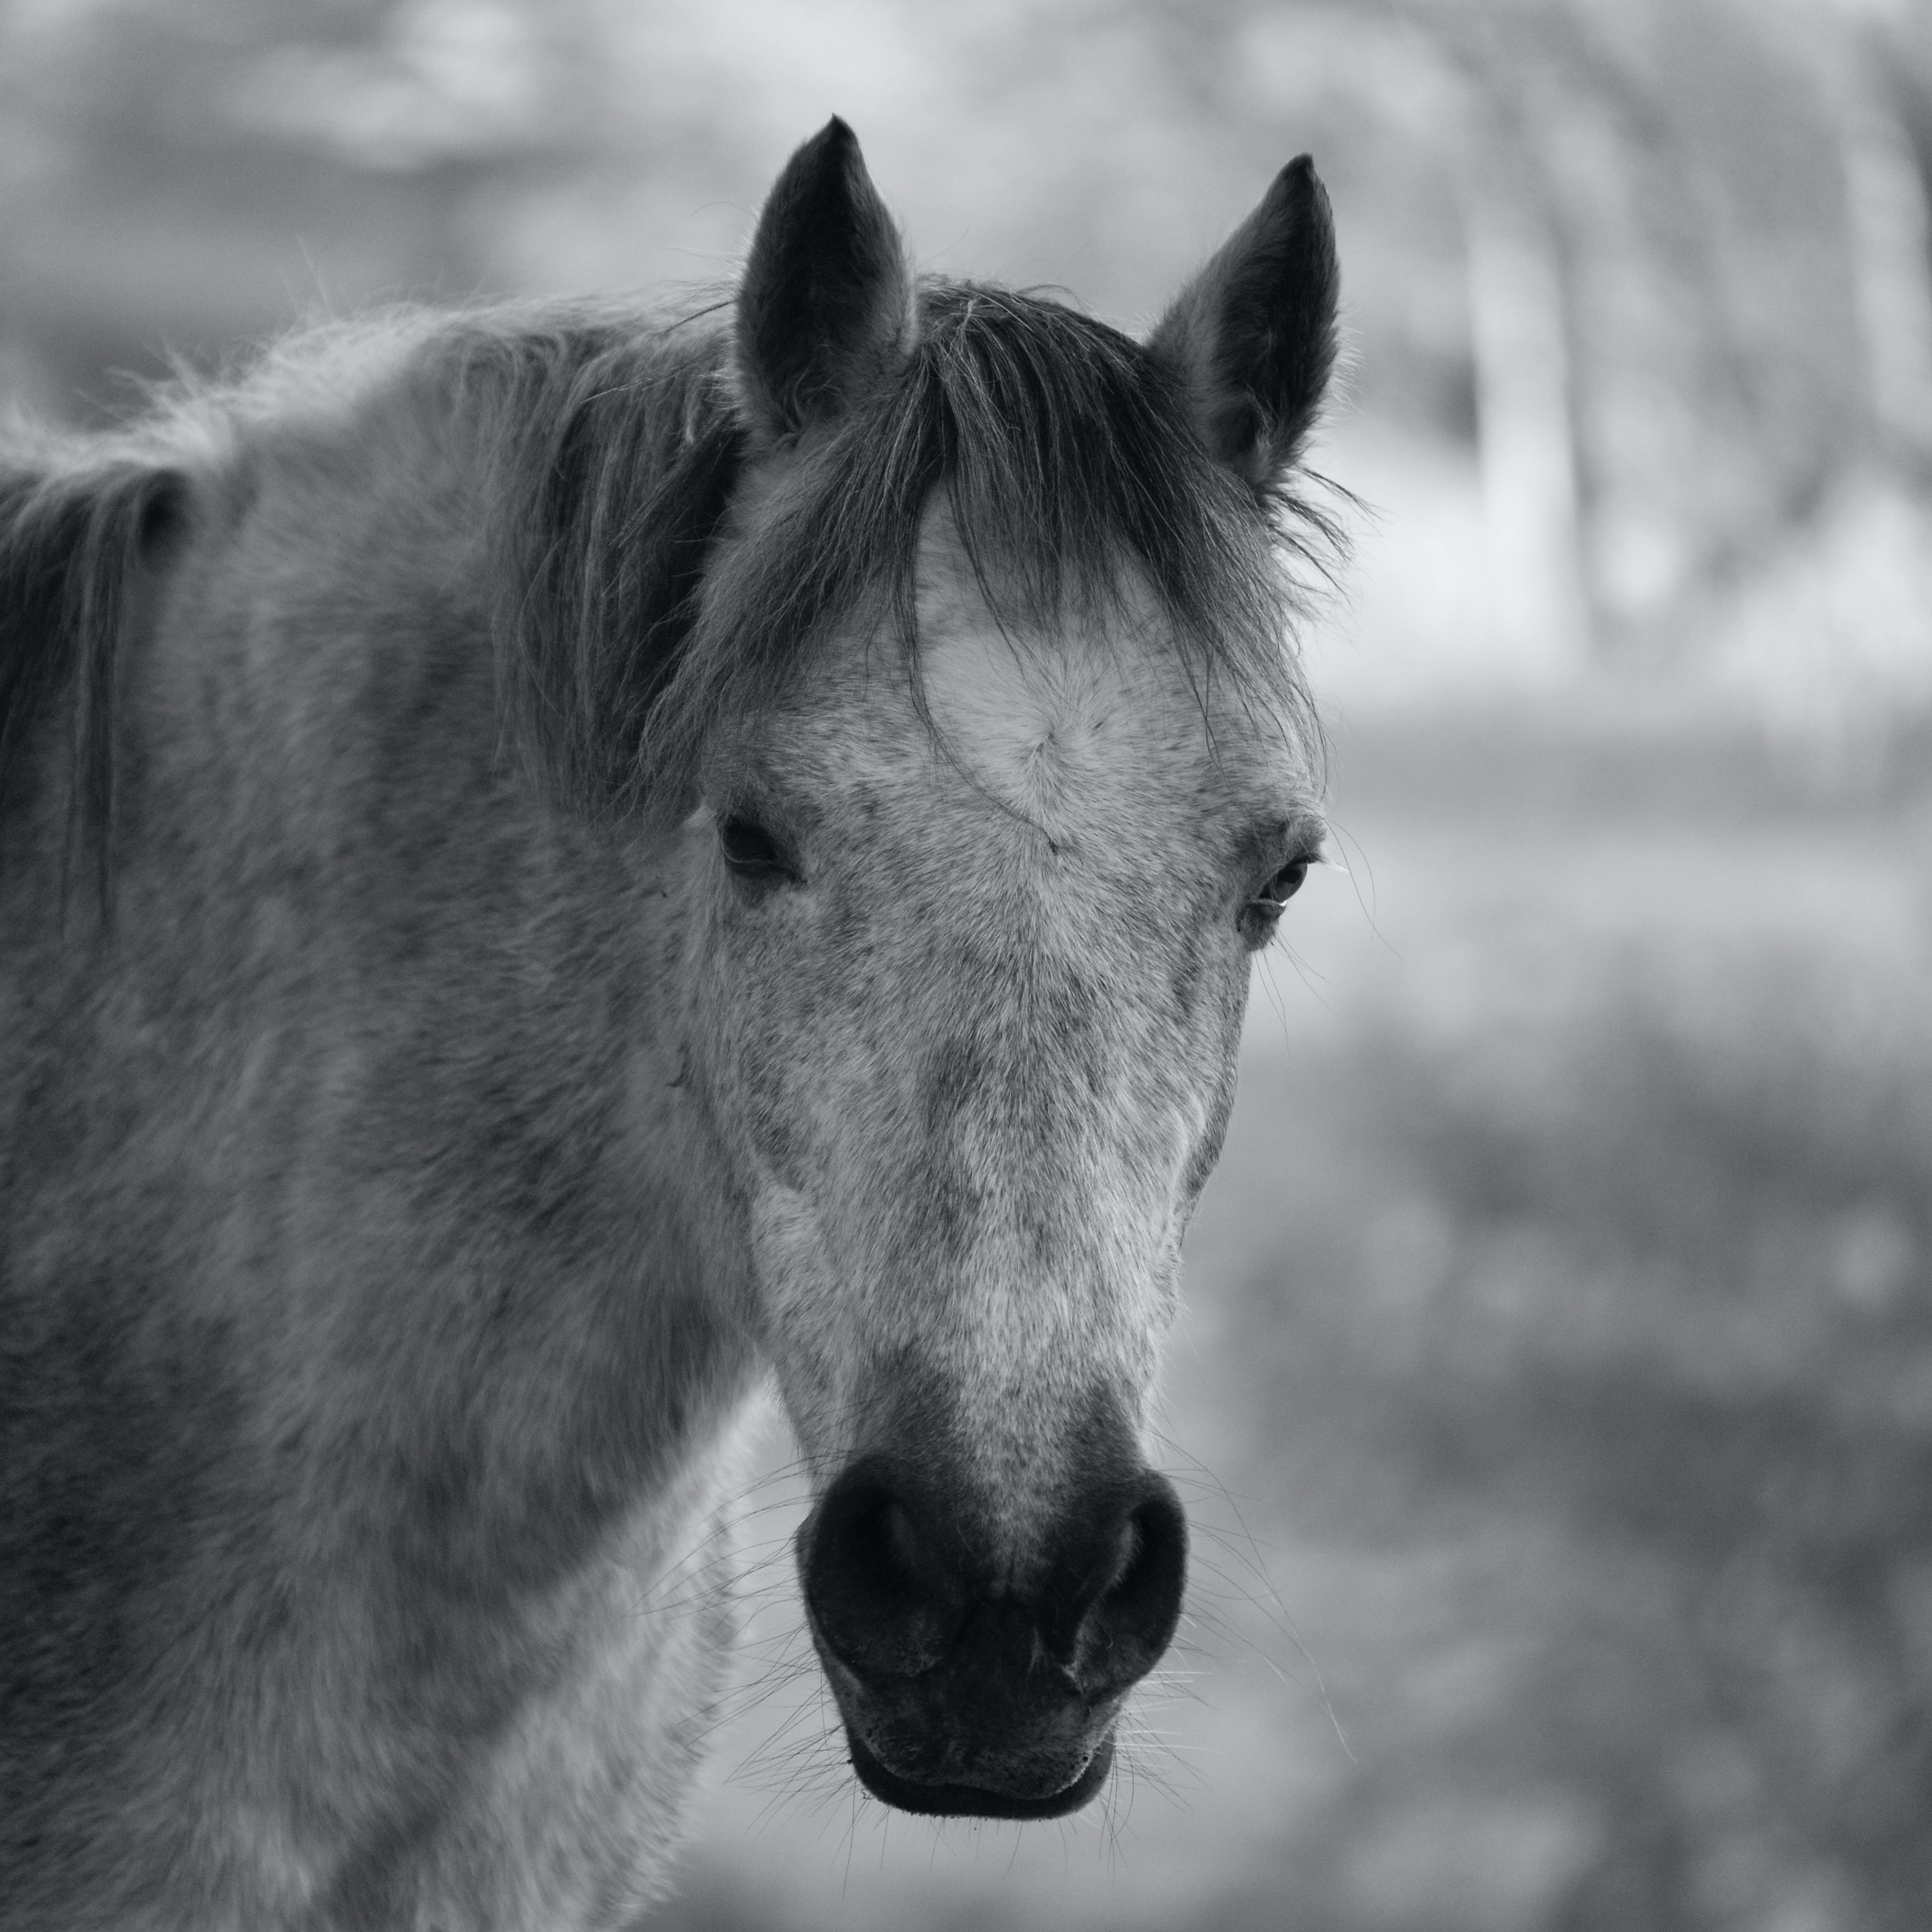 Horse Head Grayscale Photo